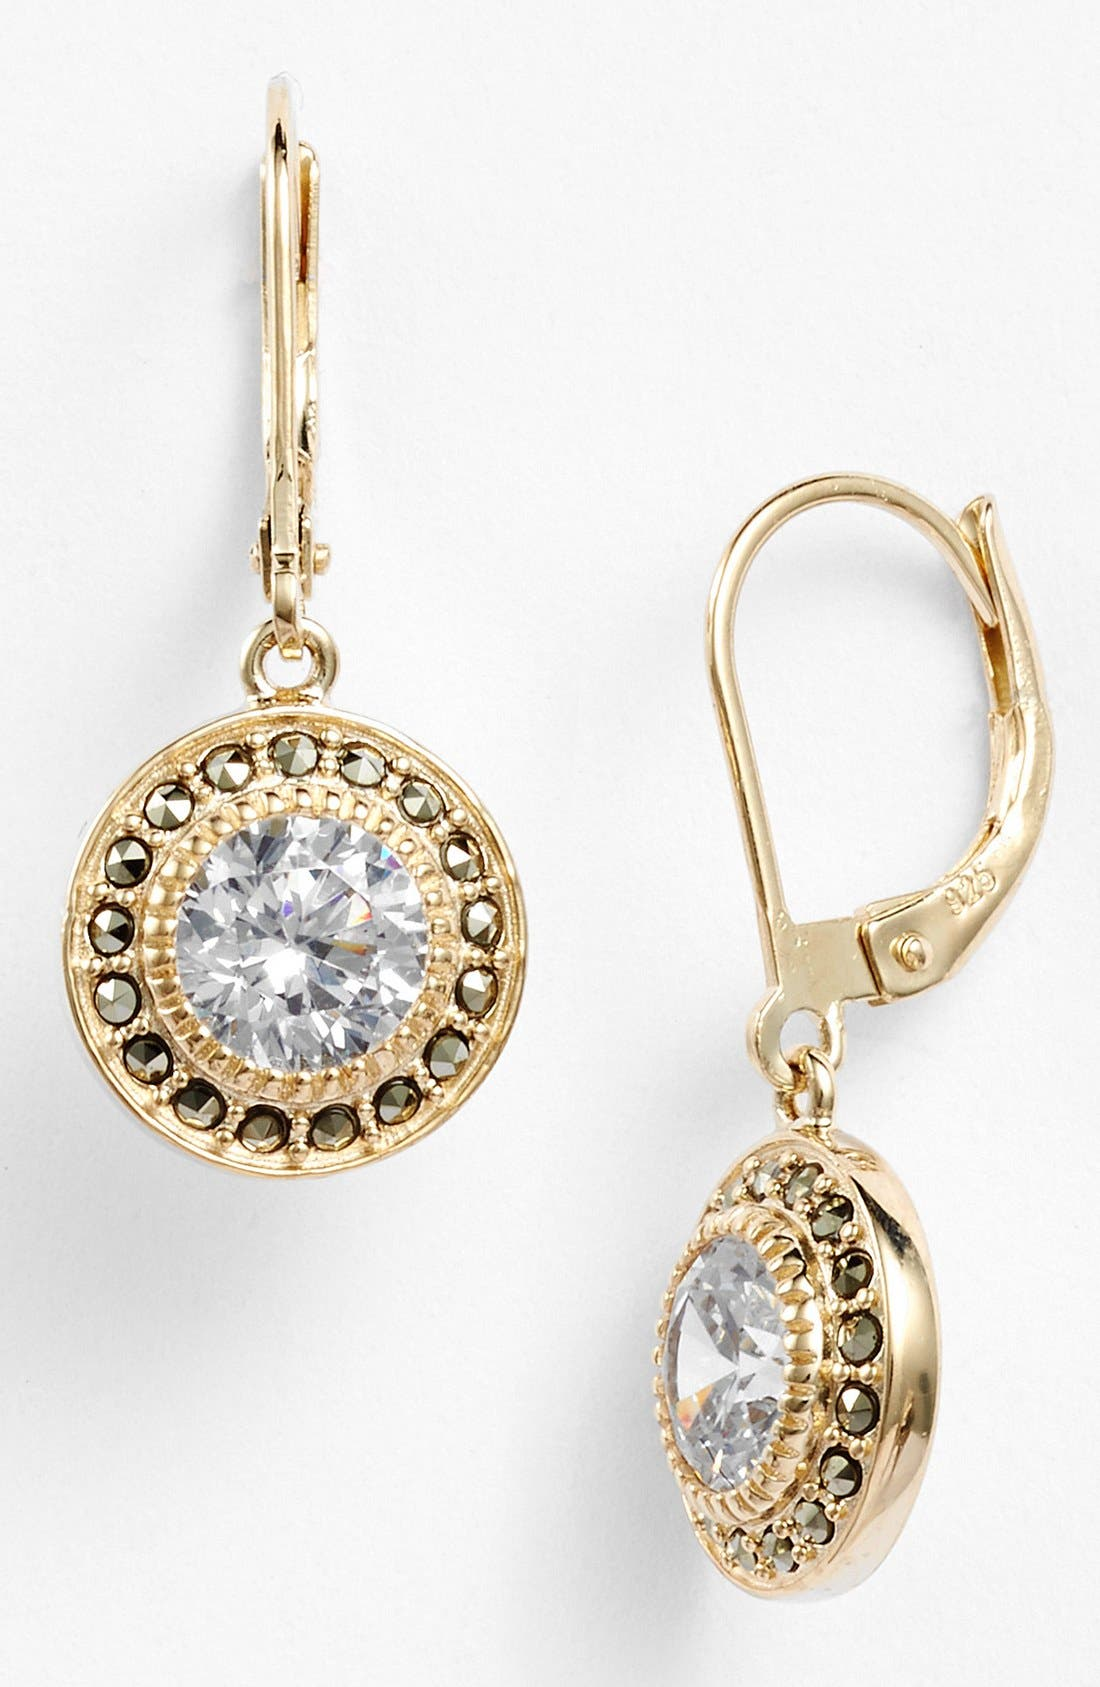 Main Image - Judith Jack Marcasite & Cubic Zirconia Drop Earrings